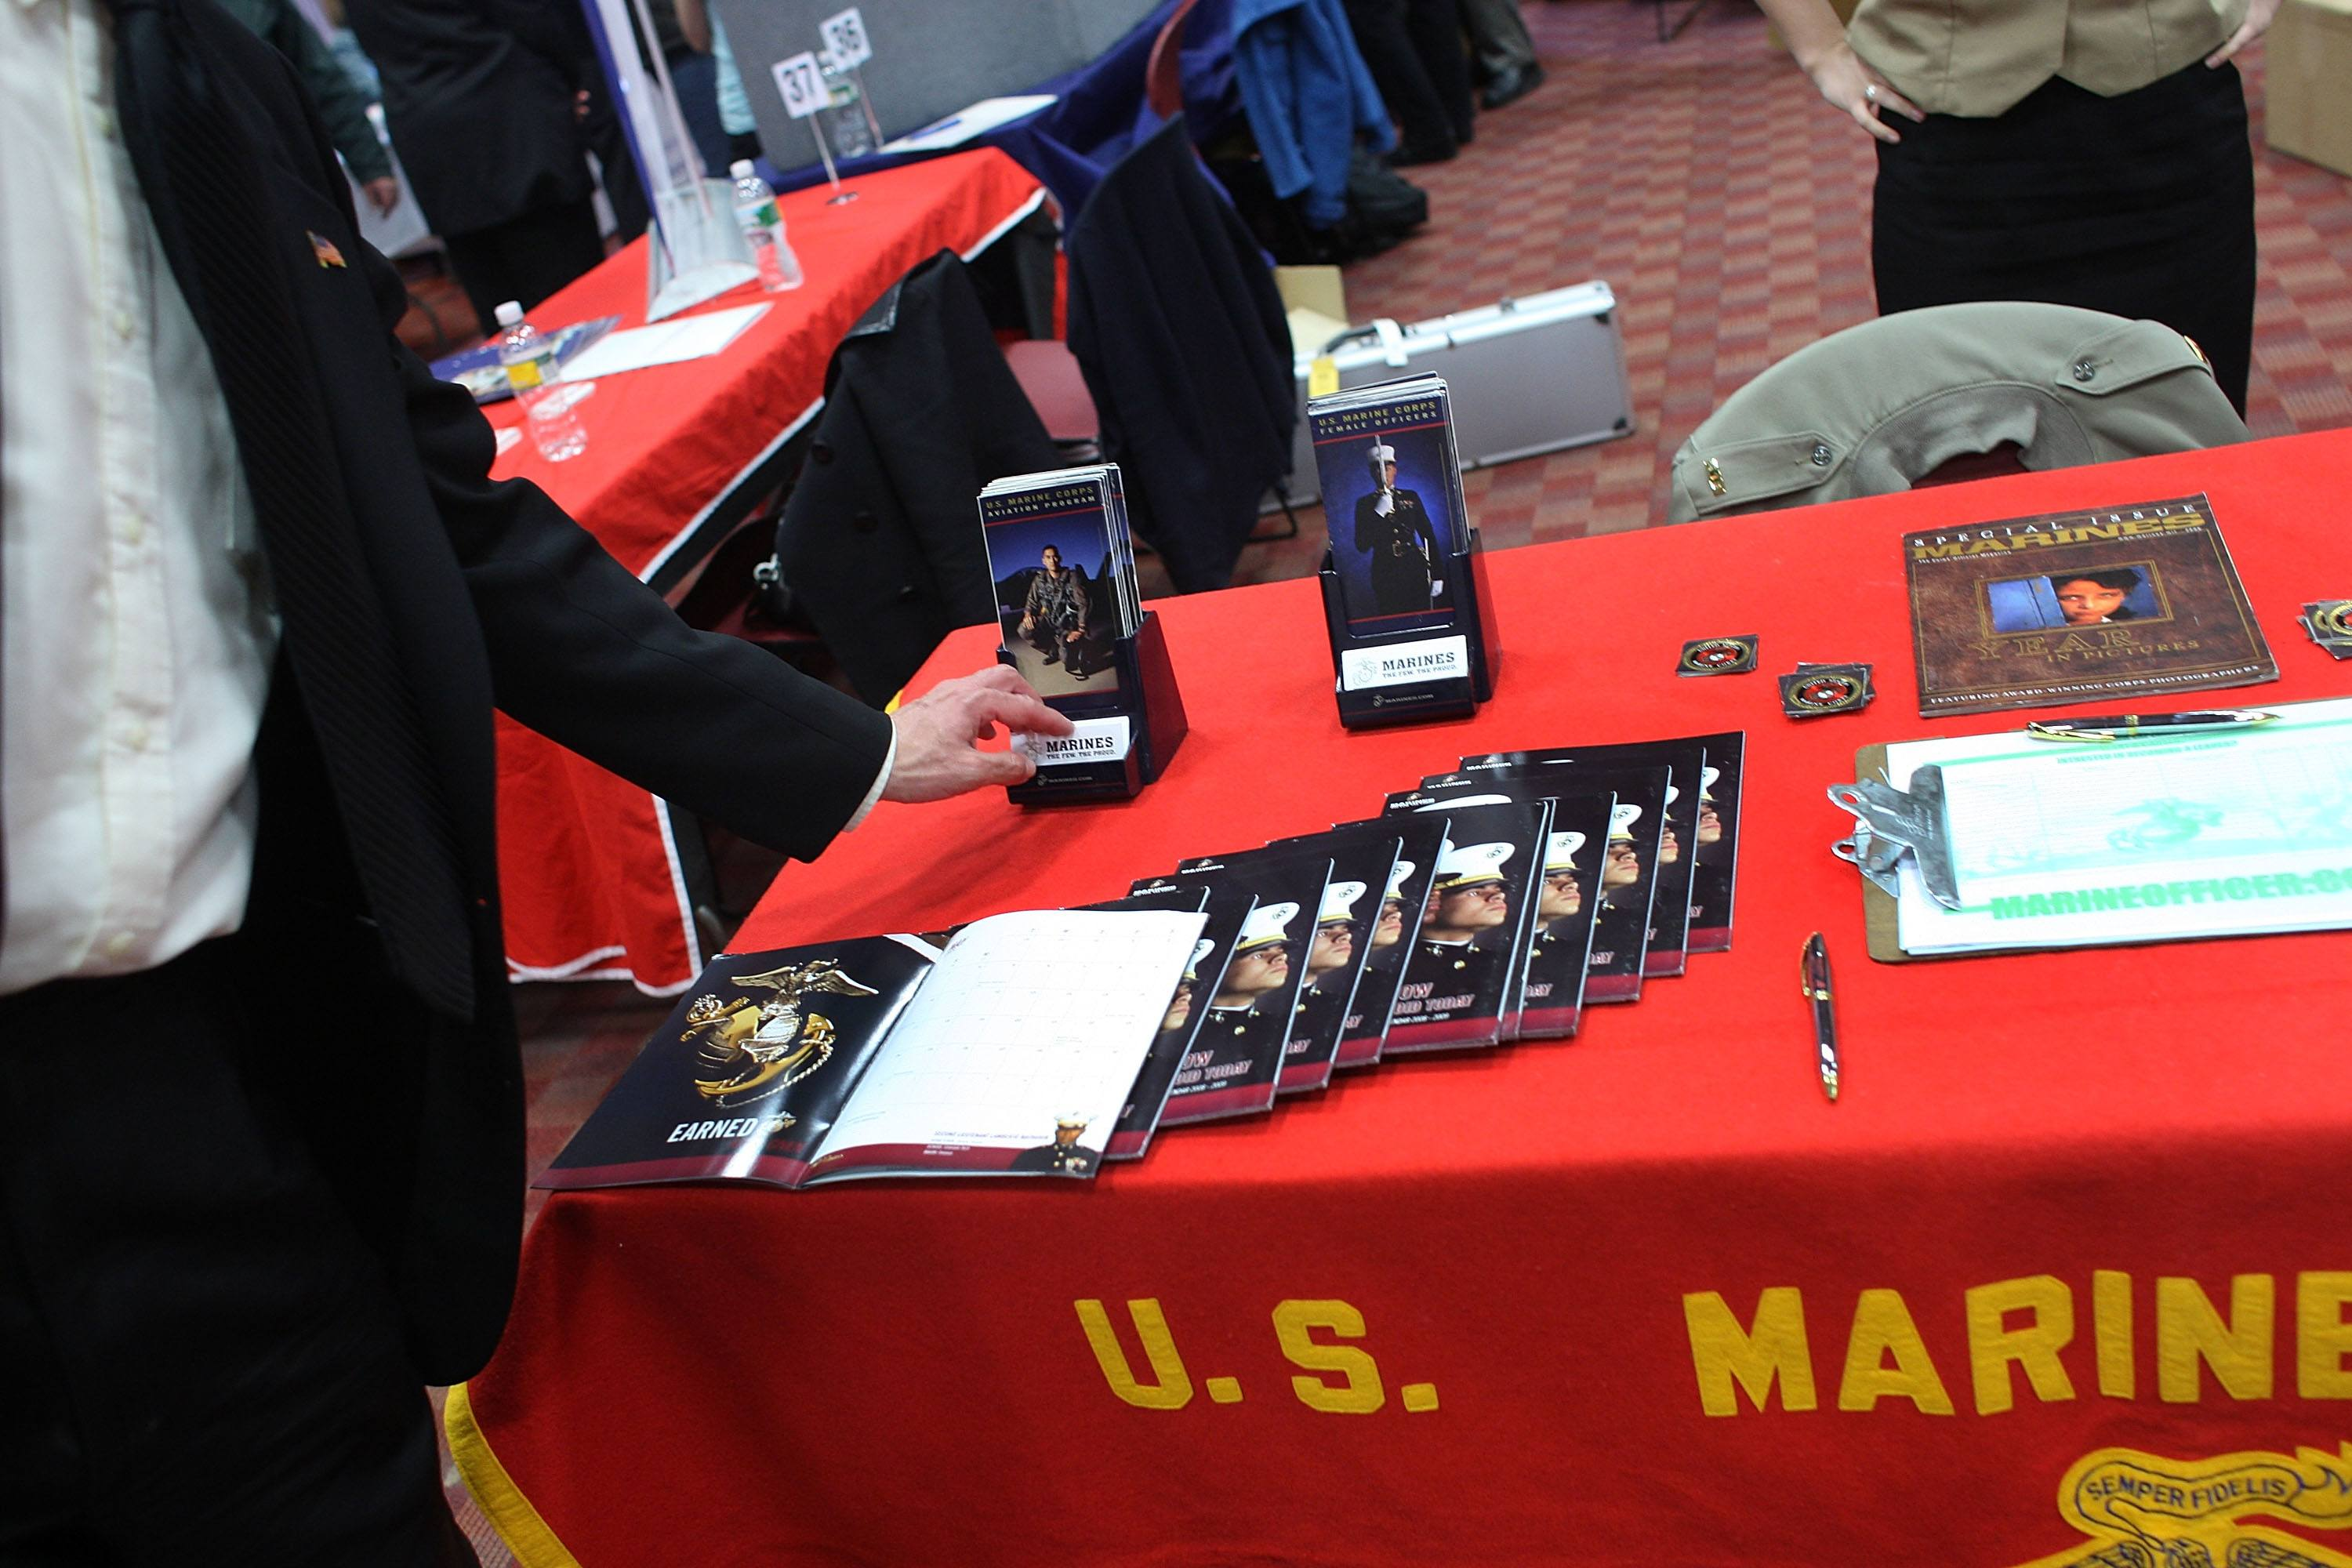 Military recruiting Marines